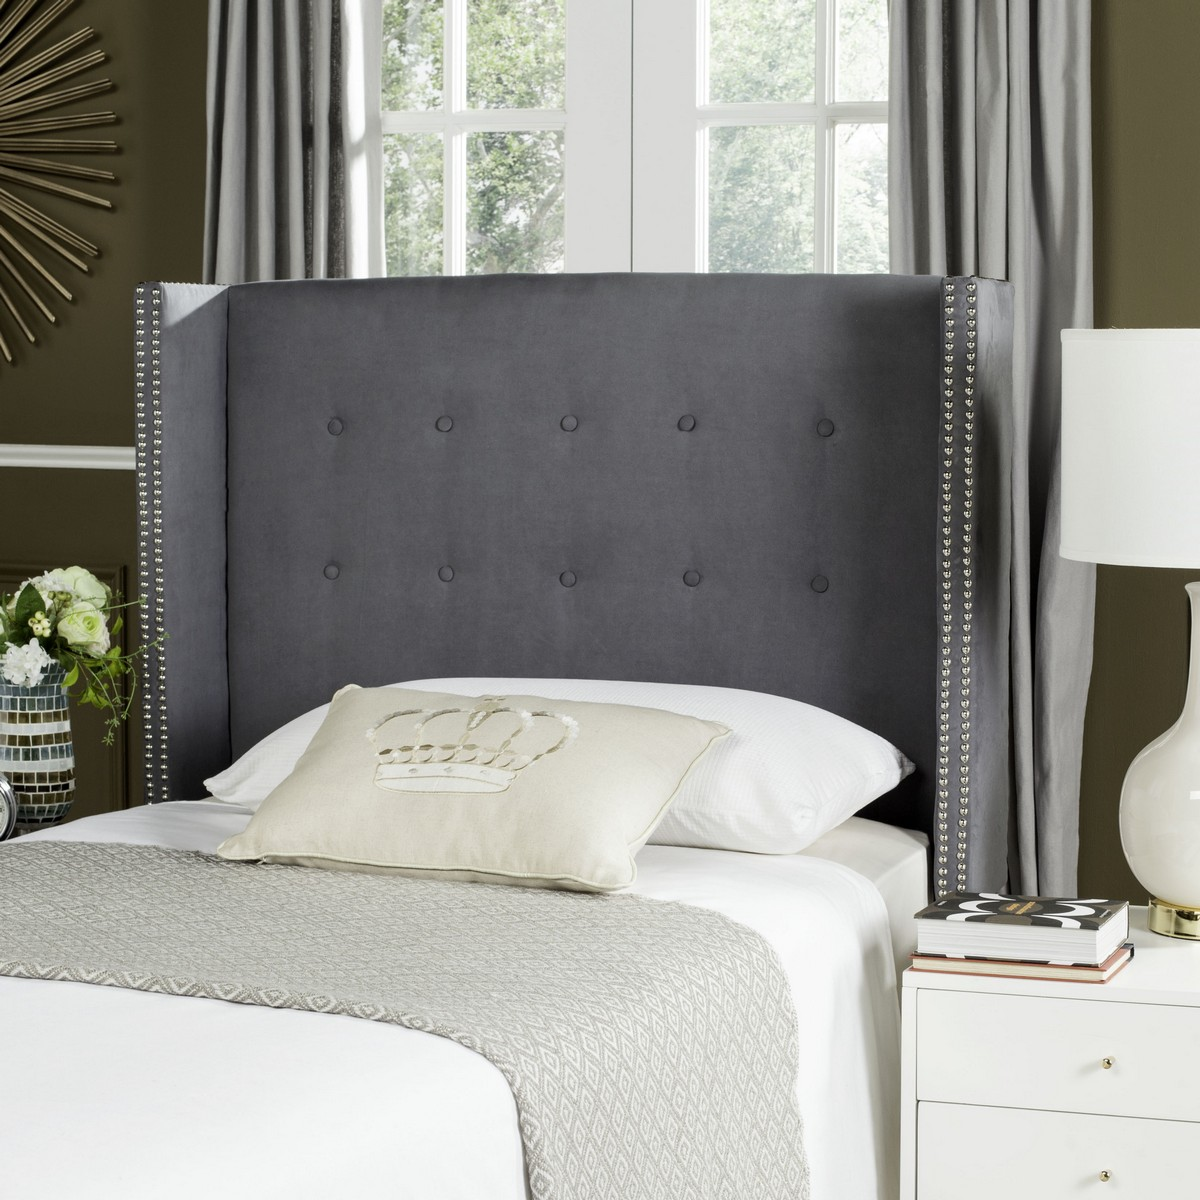 soughtafter fivestar hotel this winged headboard is for the new elite upholstered in sumptuous grey velvet and finished with silver nailhead trim